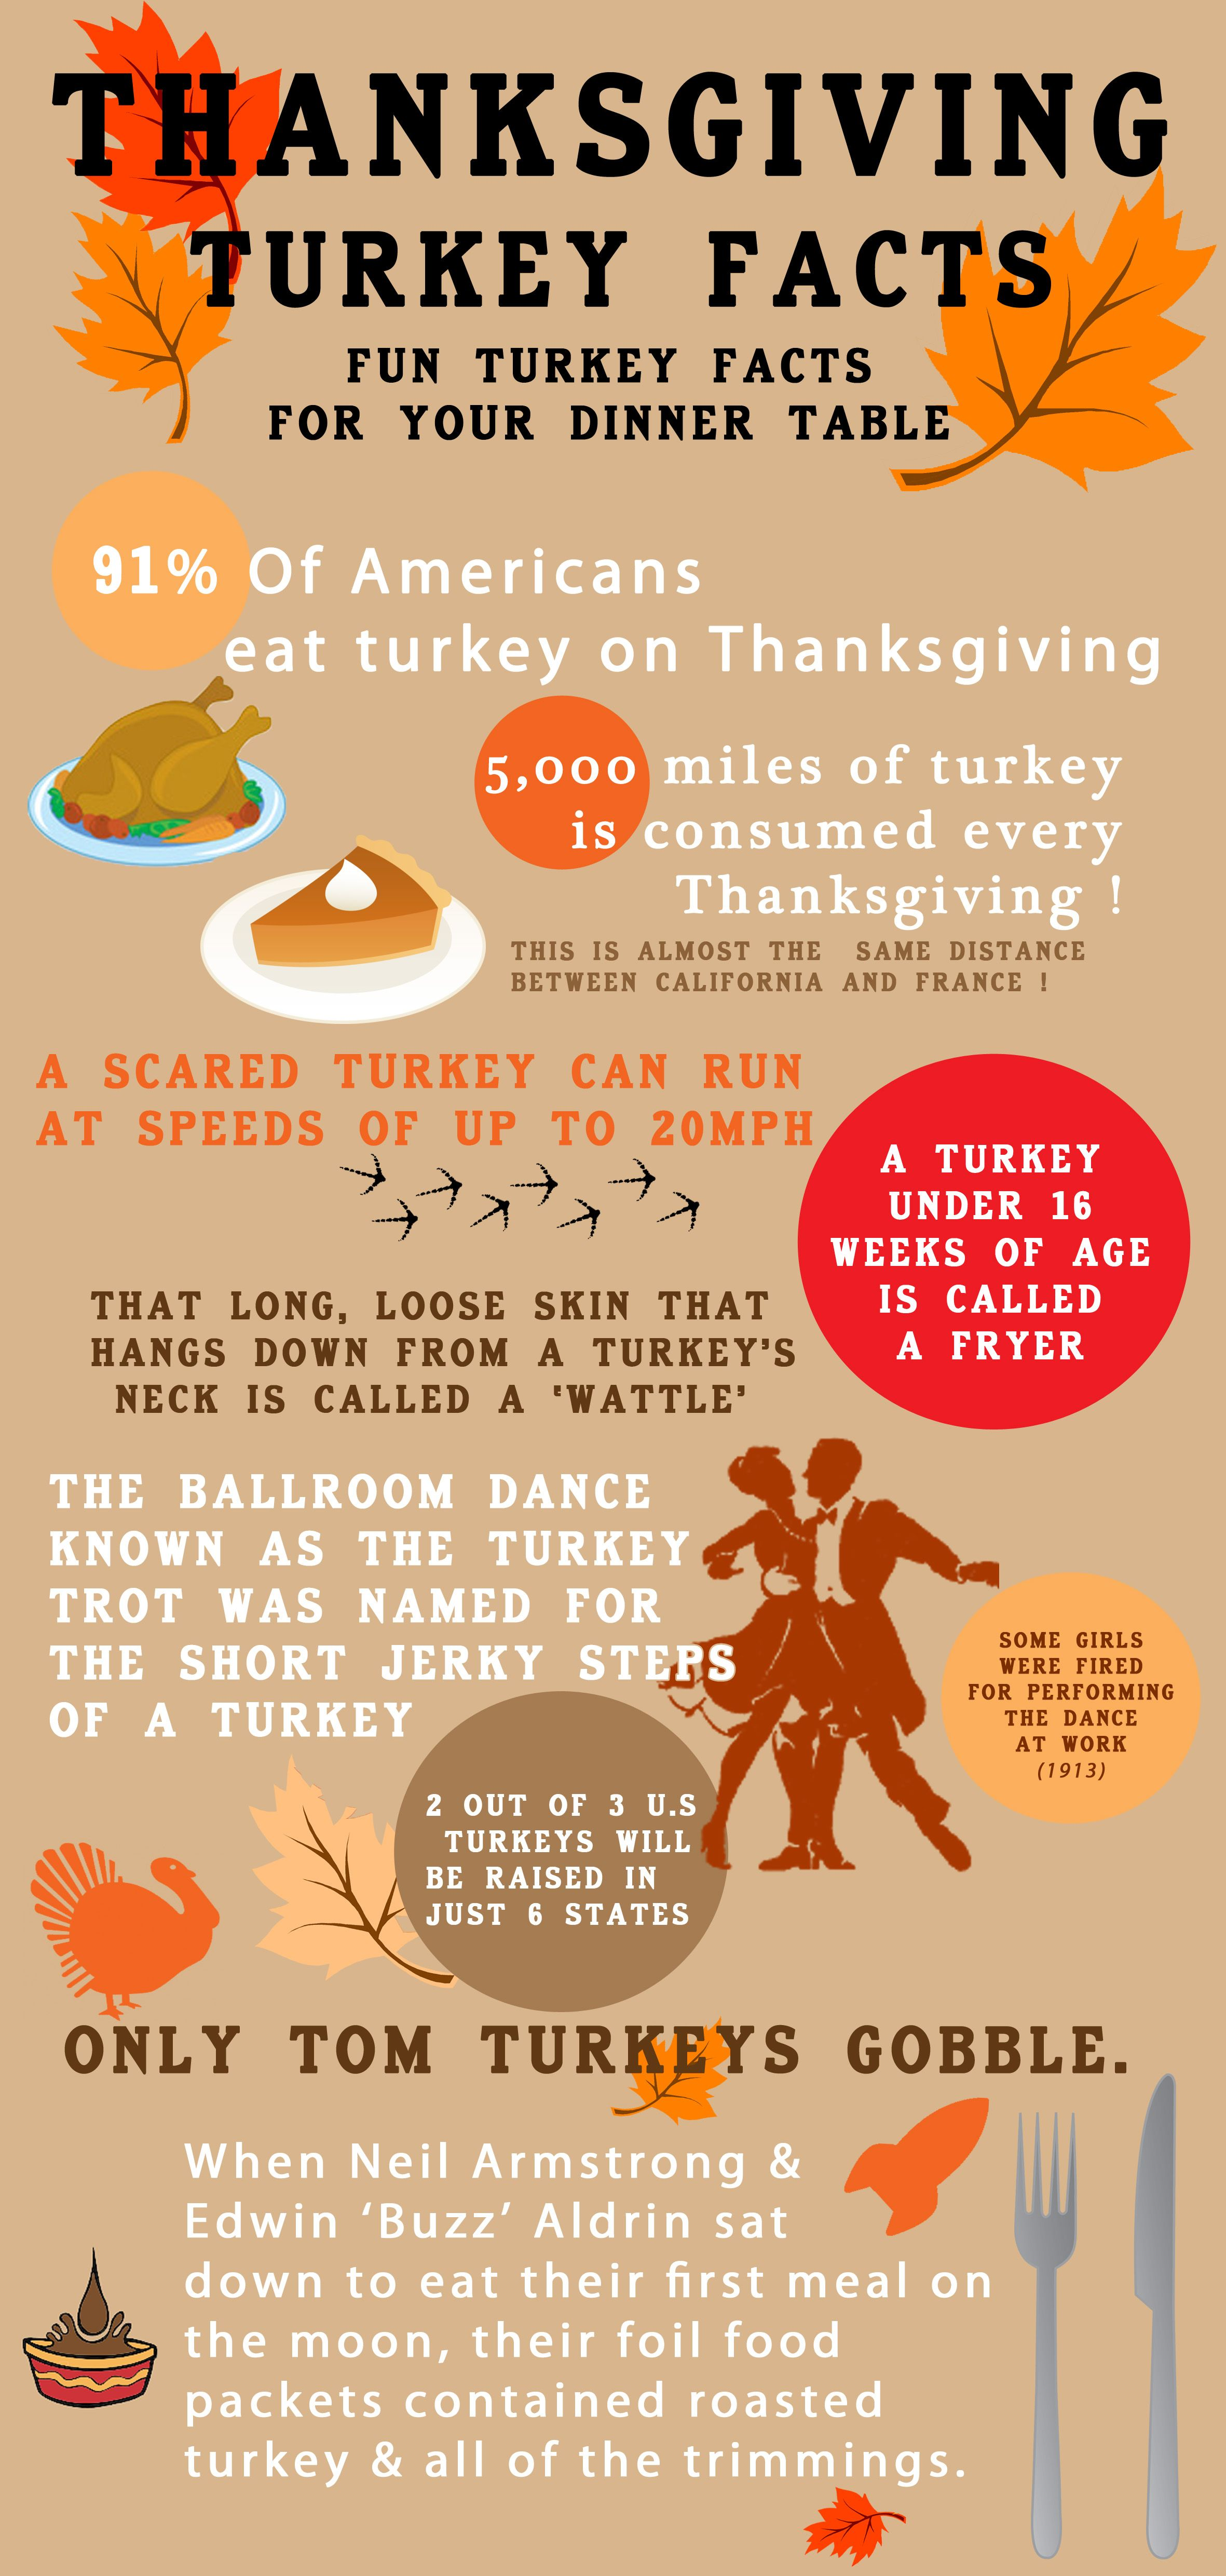 Turkey Facts Infographic For Thanksgiving Share Some Cool Turkey Facts Round The Dinner Table